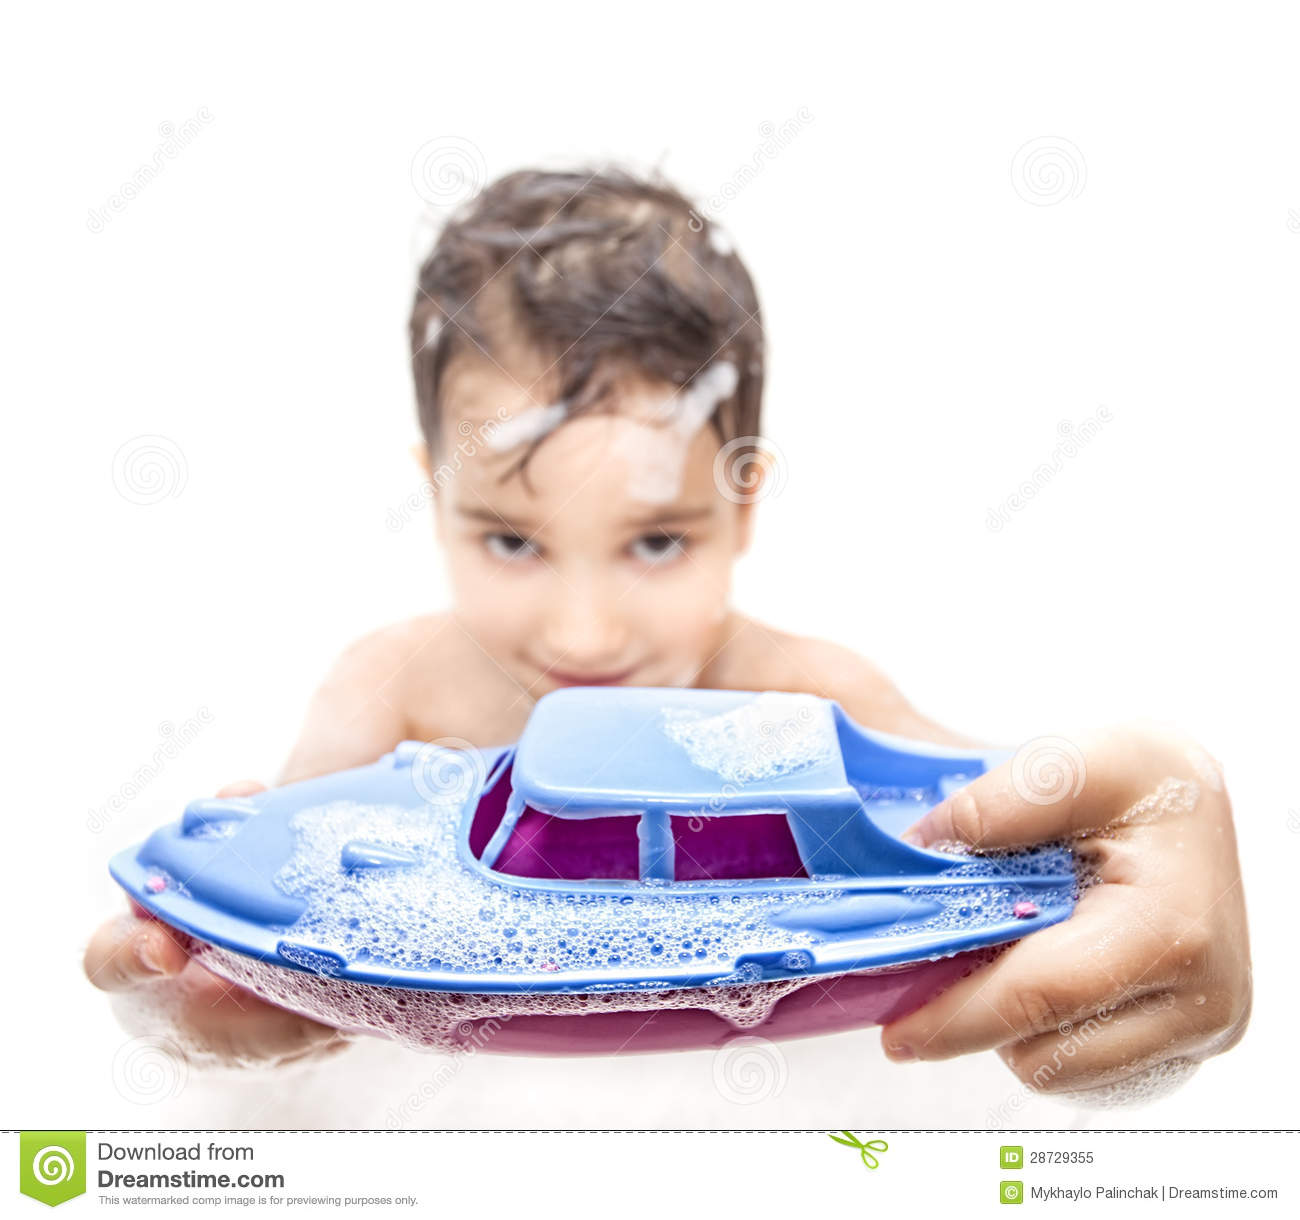 Lillle Boy Toys Boats : Boy playing in the bath with a toy boat royalty free stock